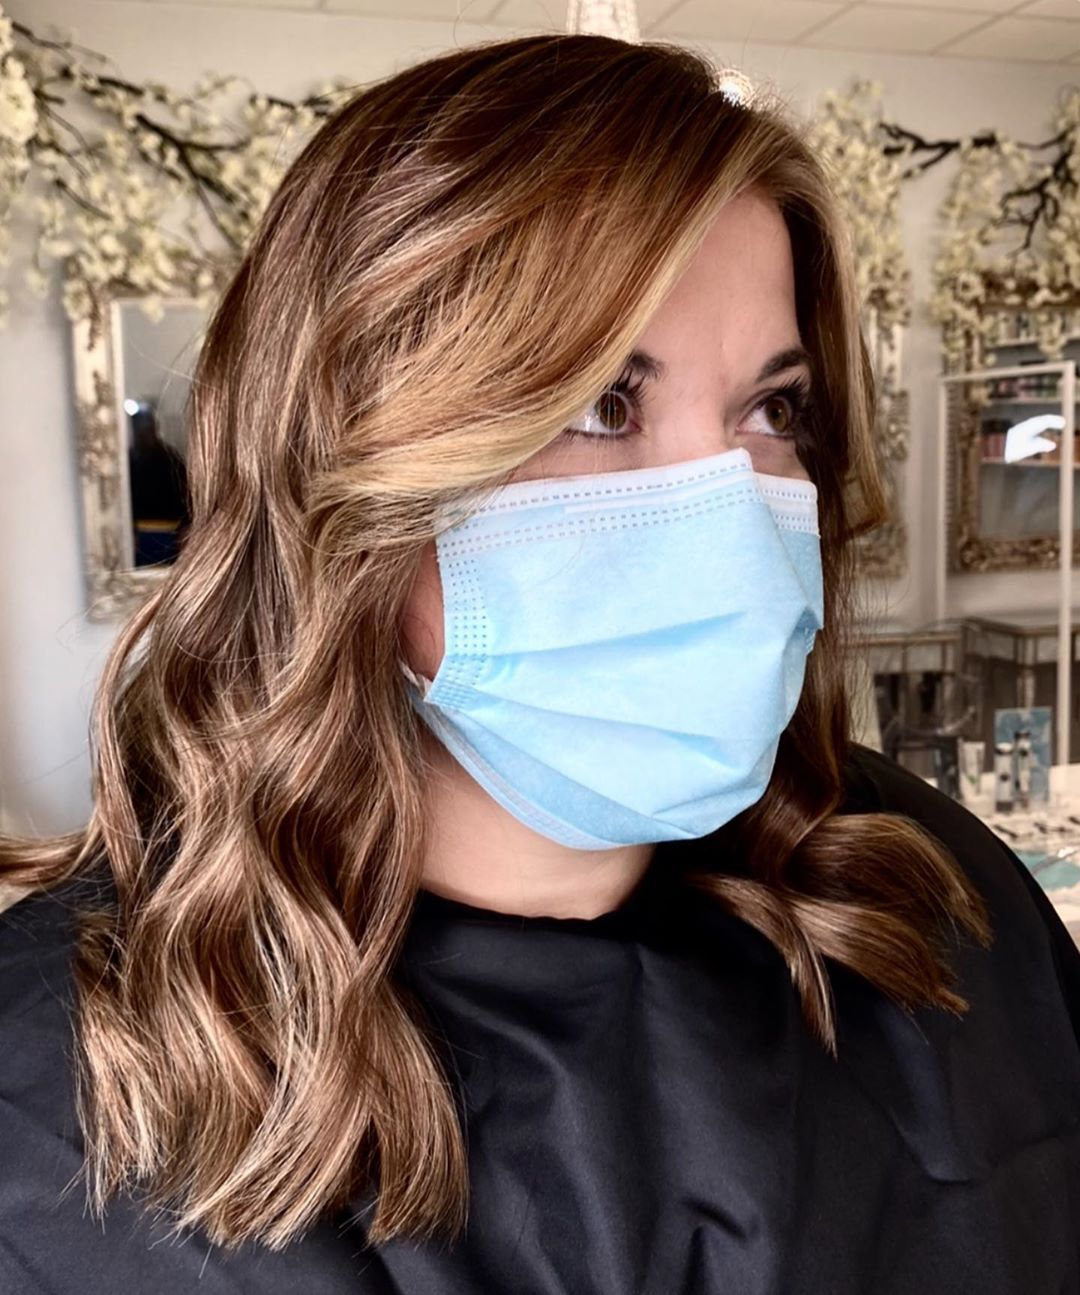 𝐀𝐔𝐓𝐔𝐌𝐍 𝐕𝐈𝐁𝐄𝐒 🍂 Sprinkles Of Lightness To make This Brunette Shine With A Pop Of Face Framing 🍁 By Lyndsey ✨ #autumnvibes🍁 #autumncolors #caramelbalayage #blonde #blondespecialist #waves #babylights #ribbons #brunettebalayage #hairvids #hairinspro #hairtransformations #haircolourspecialists #lavishlocks #blonde #hairstylist #colourspecialist #hairextensions #livedinblonde #dublinhairdresser #hairproducts #dimensionalblonde #naturalblonde #colourist #modernsalon #blogger #hairinspro